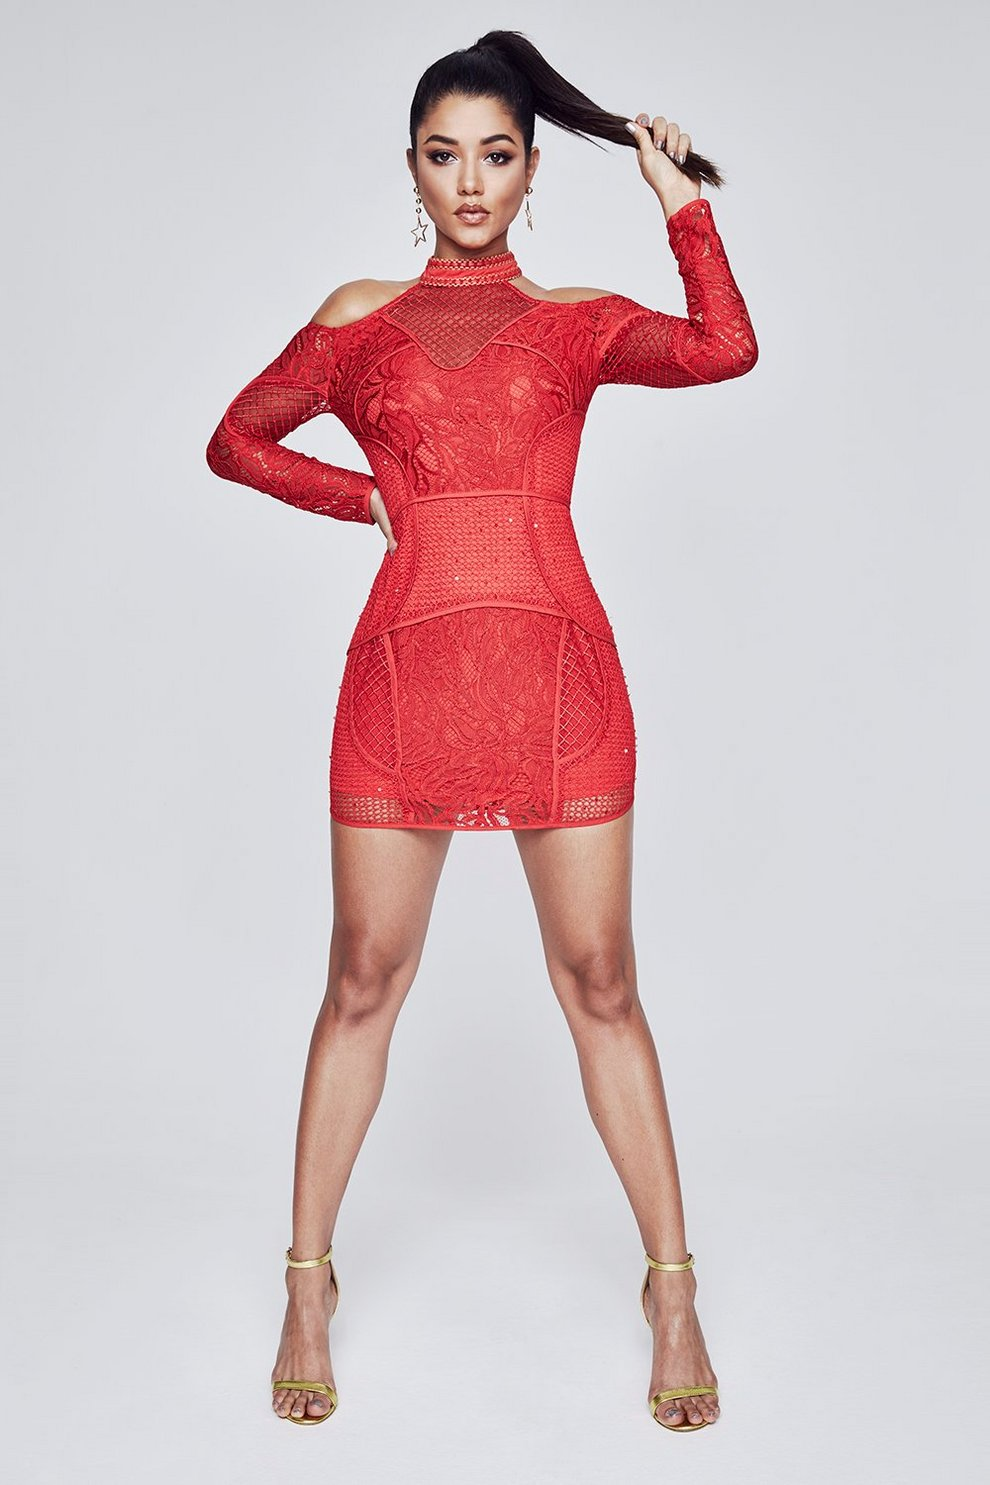 Shopping Online Boohoo Premium Corded Lace Cold Shoulder Dress Outlet Locations Cheap Price Outlet Footlocker Pictures Newest Cheap Price NealpsL0